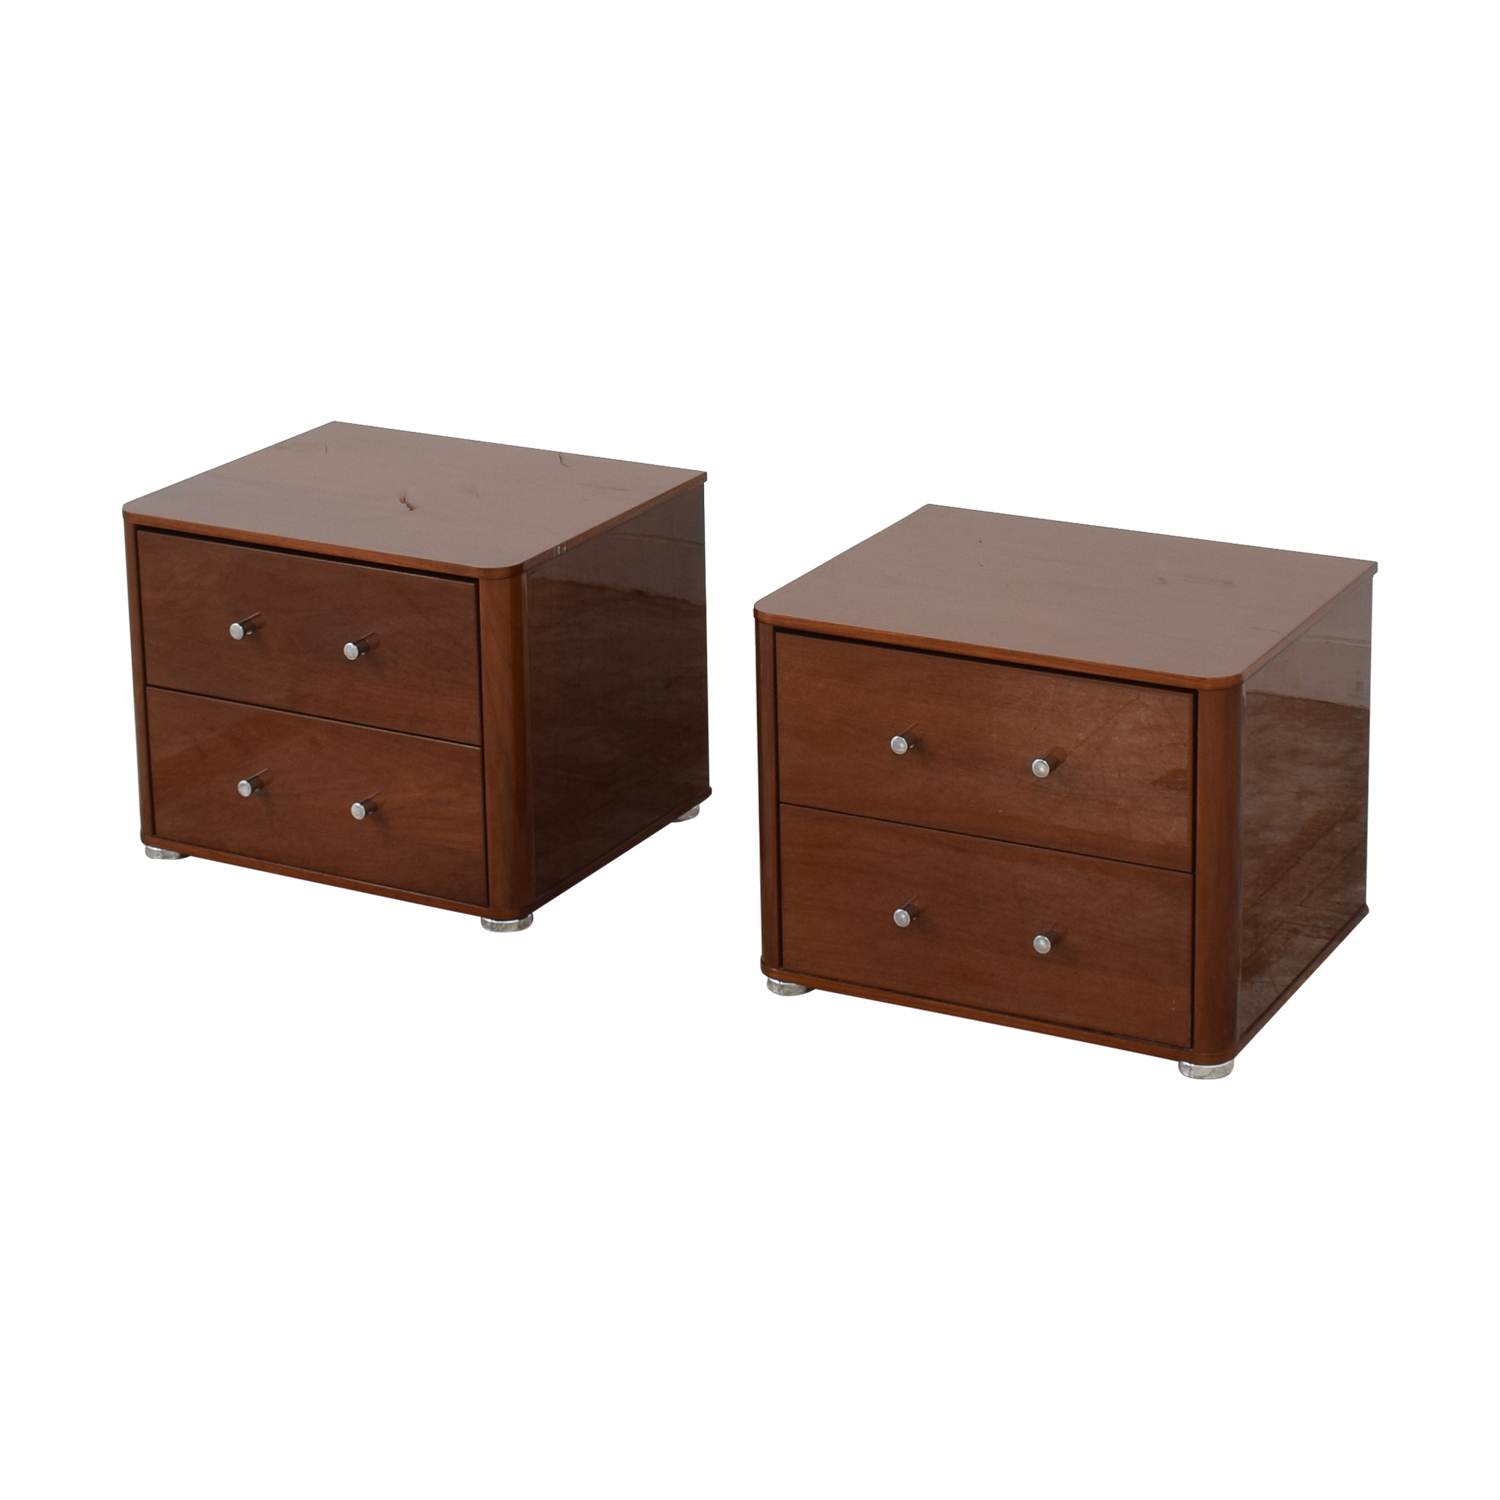 Noci Design Camelgroup Two Drawer Nighstands Noci Design